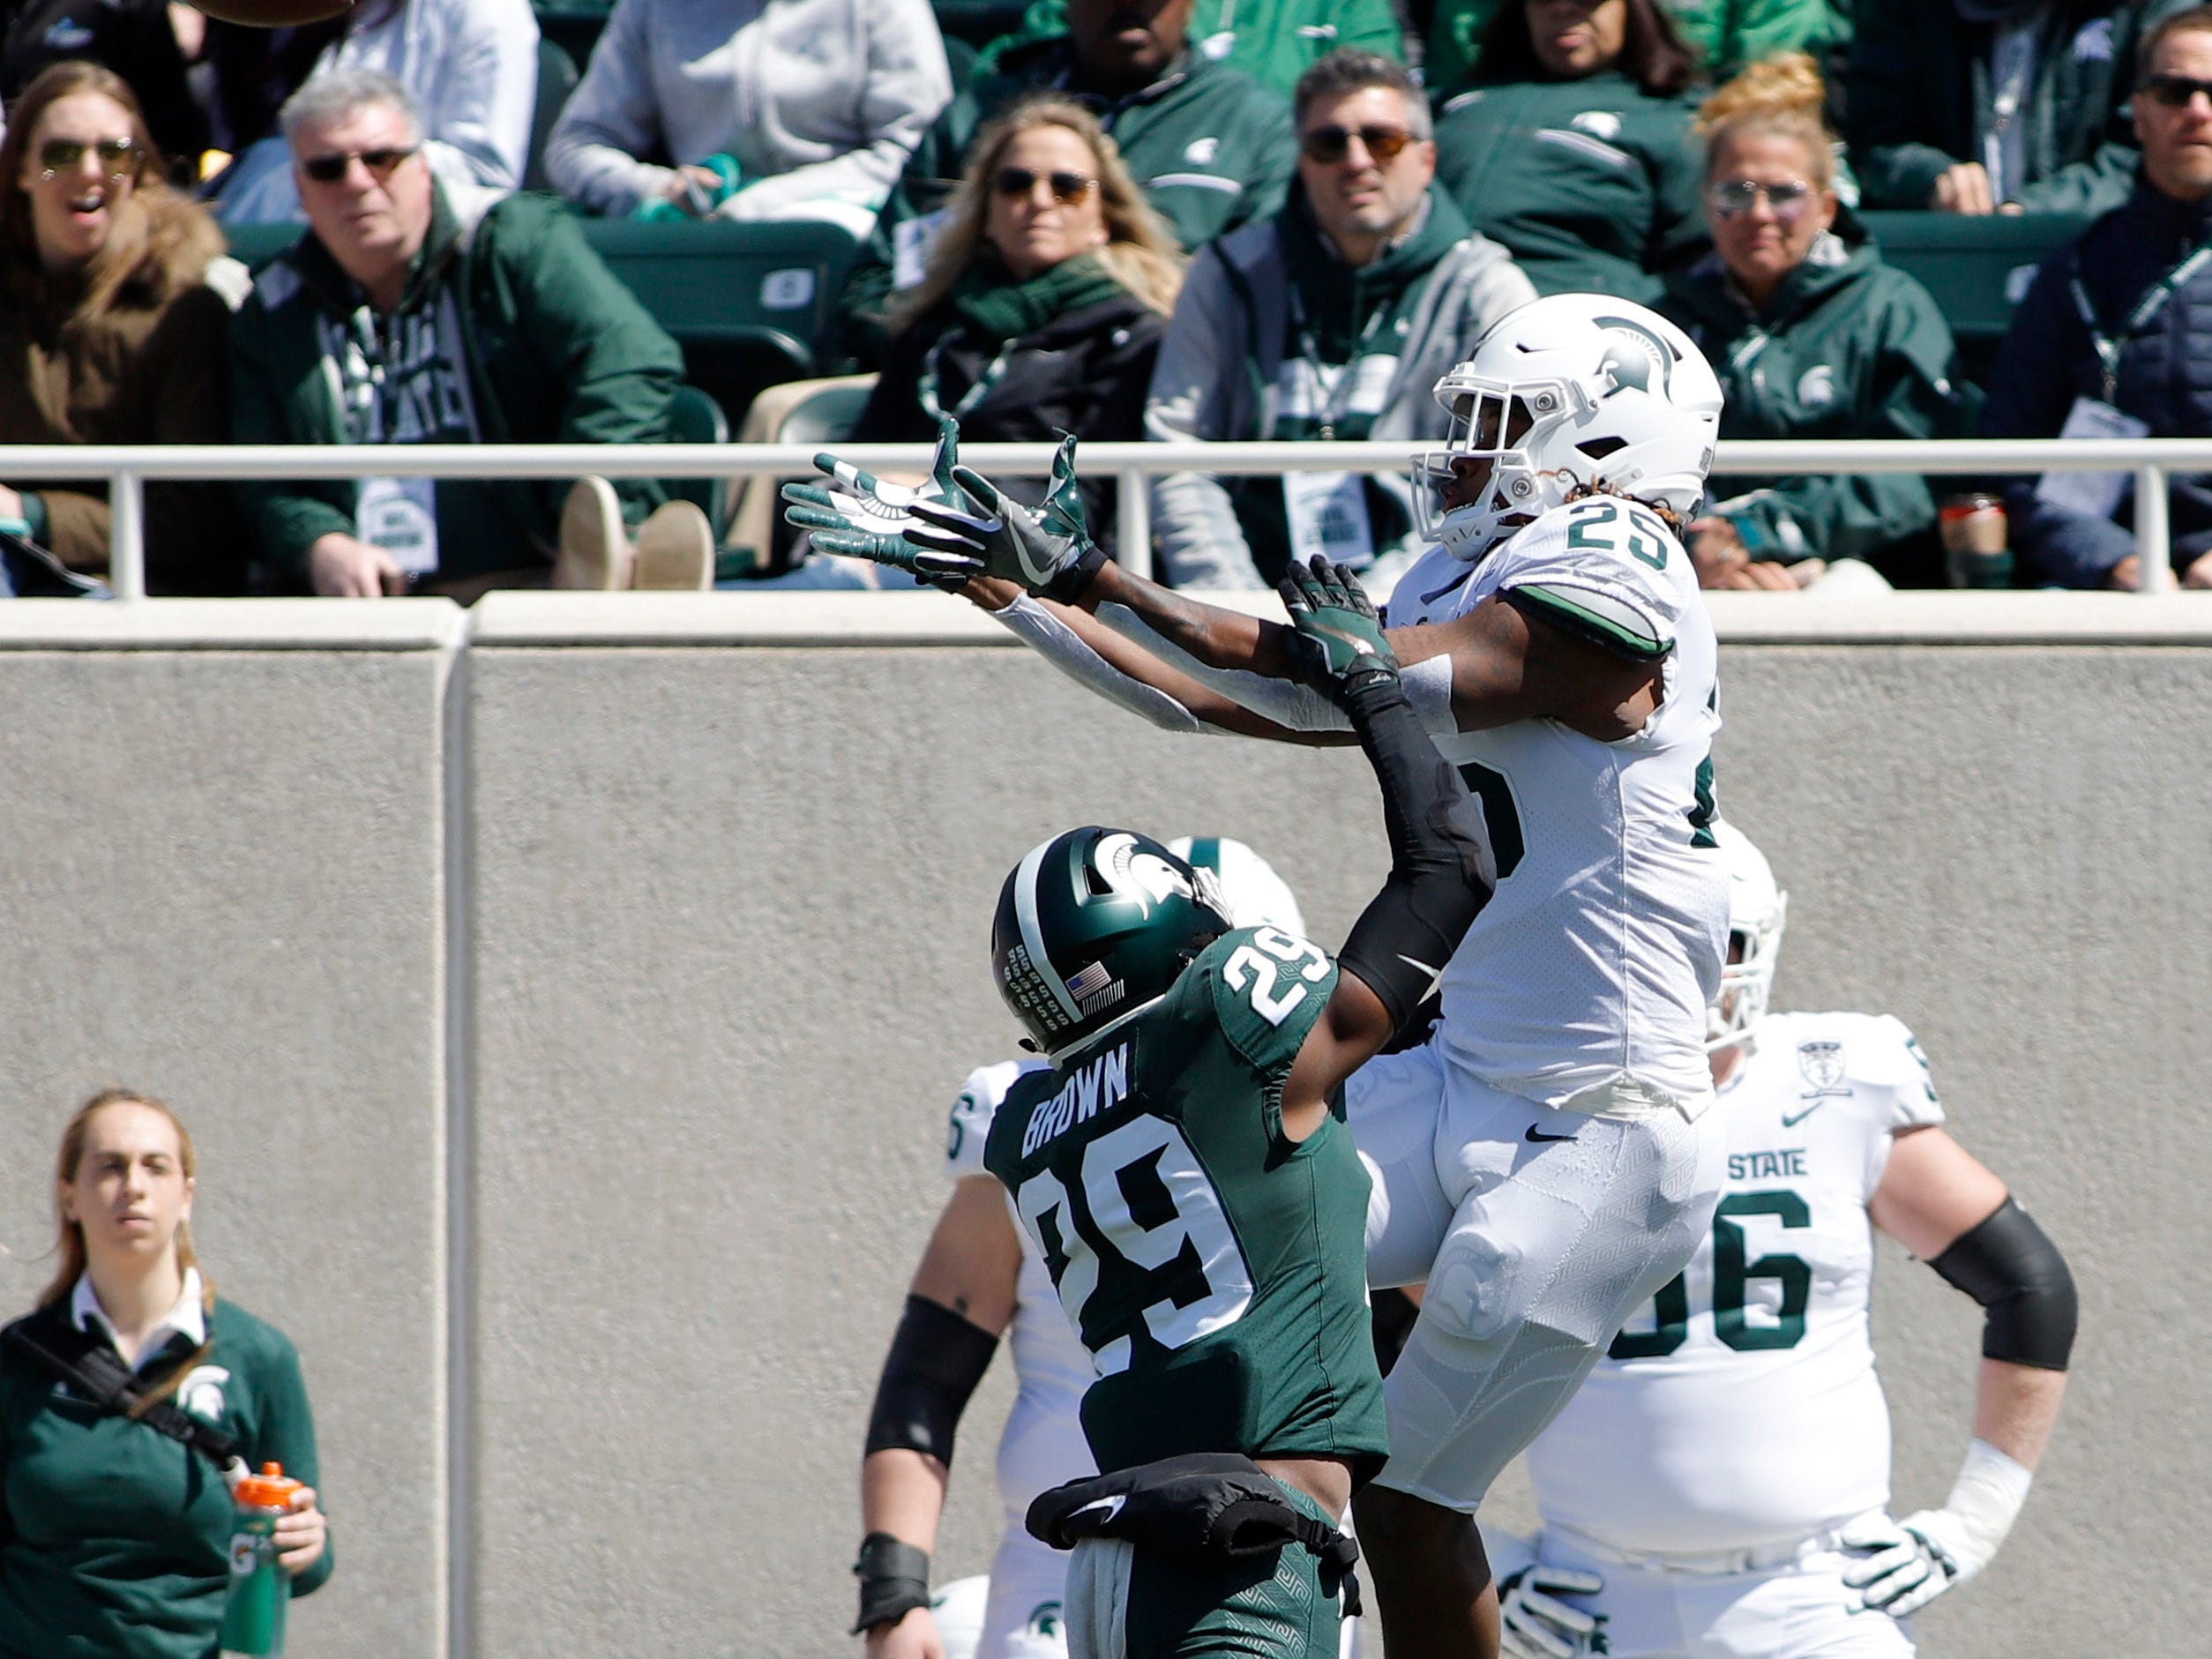 Michigan State's Darrell Stewart Jr., right, catches a pass over Shakur Brown (29) during a spring scrimmage Saturday, April 13, 2019, in East Lansing.